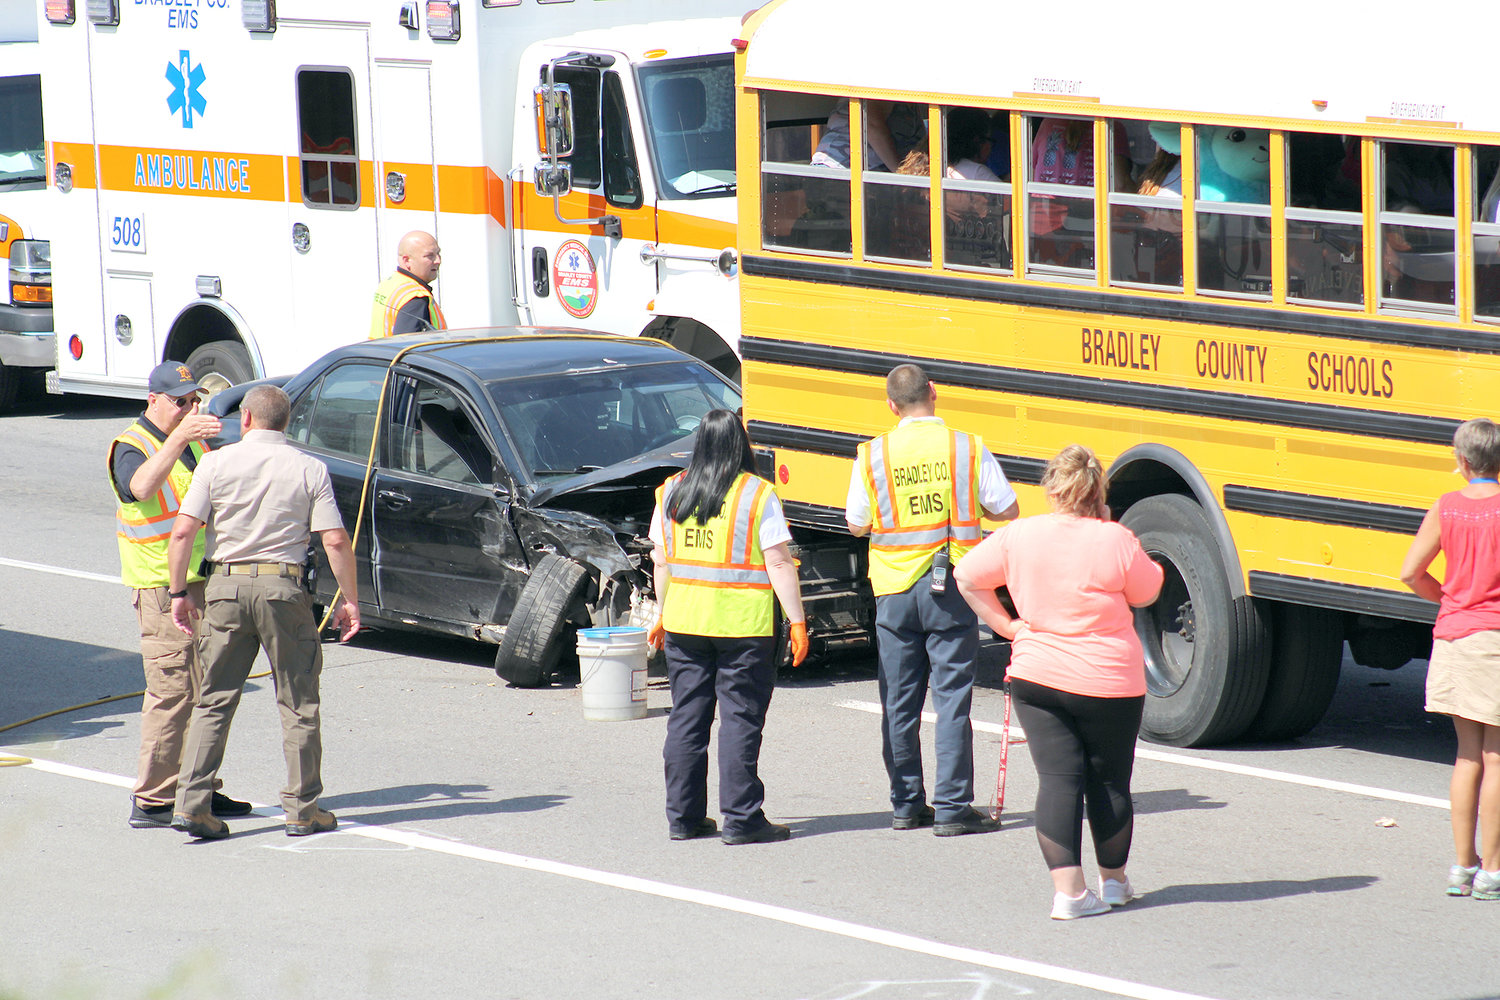 A VEHICLE is partially wedged underneath a Bradley County Schools activity bus after it slammed into the bus Monday afternoon on Georgetown Road N.W., near Exit 25. No students were injured in the accident. The driver was transported to a local hospital, where he was treated for minor injuries.